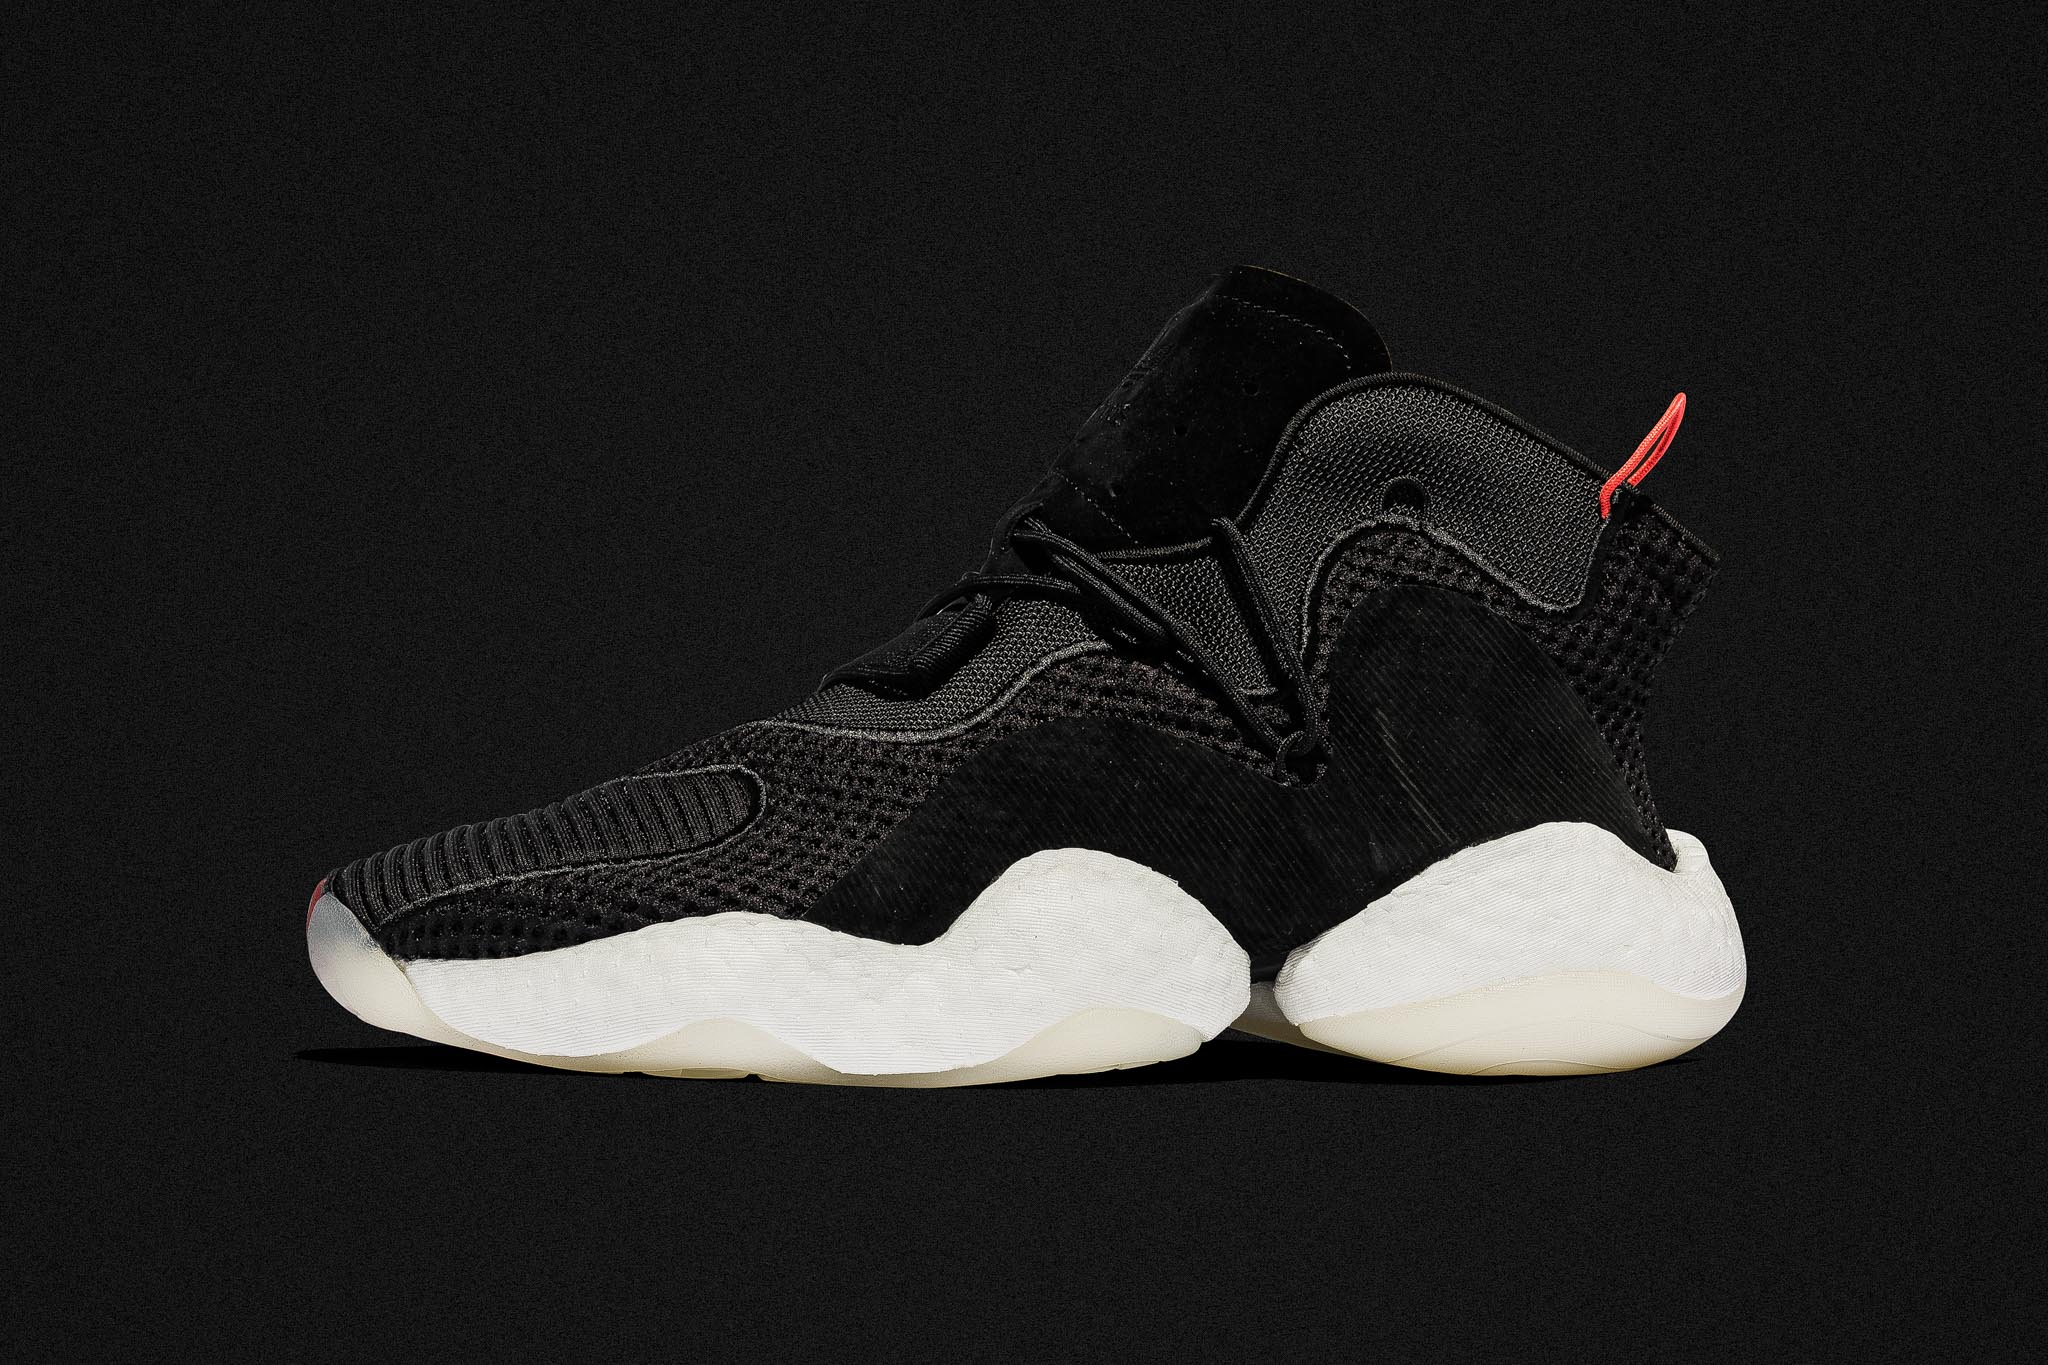 adidas Crazy BYW 'Core Black' 06.01.18